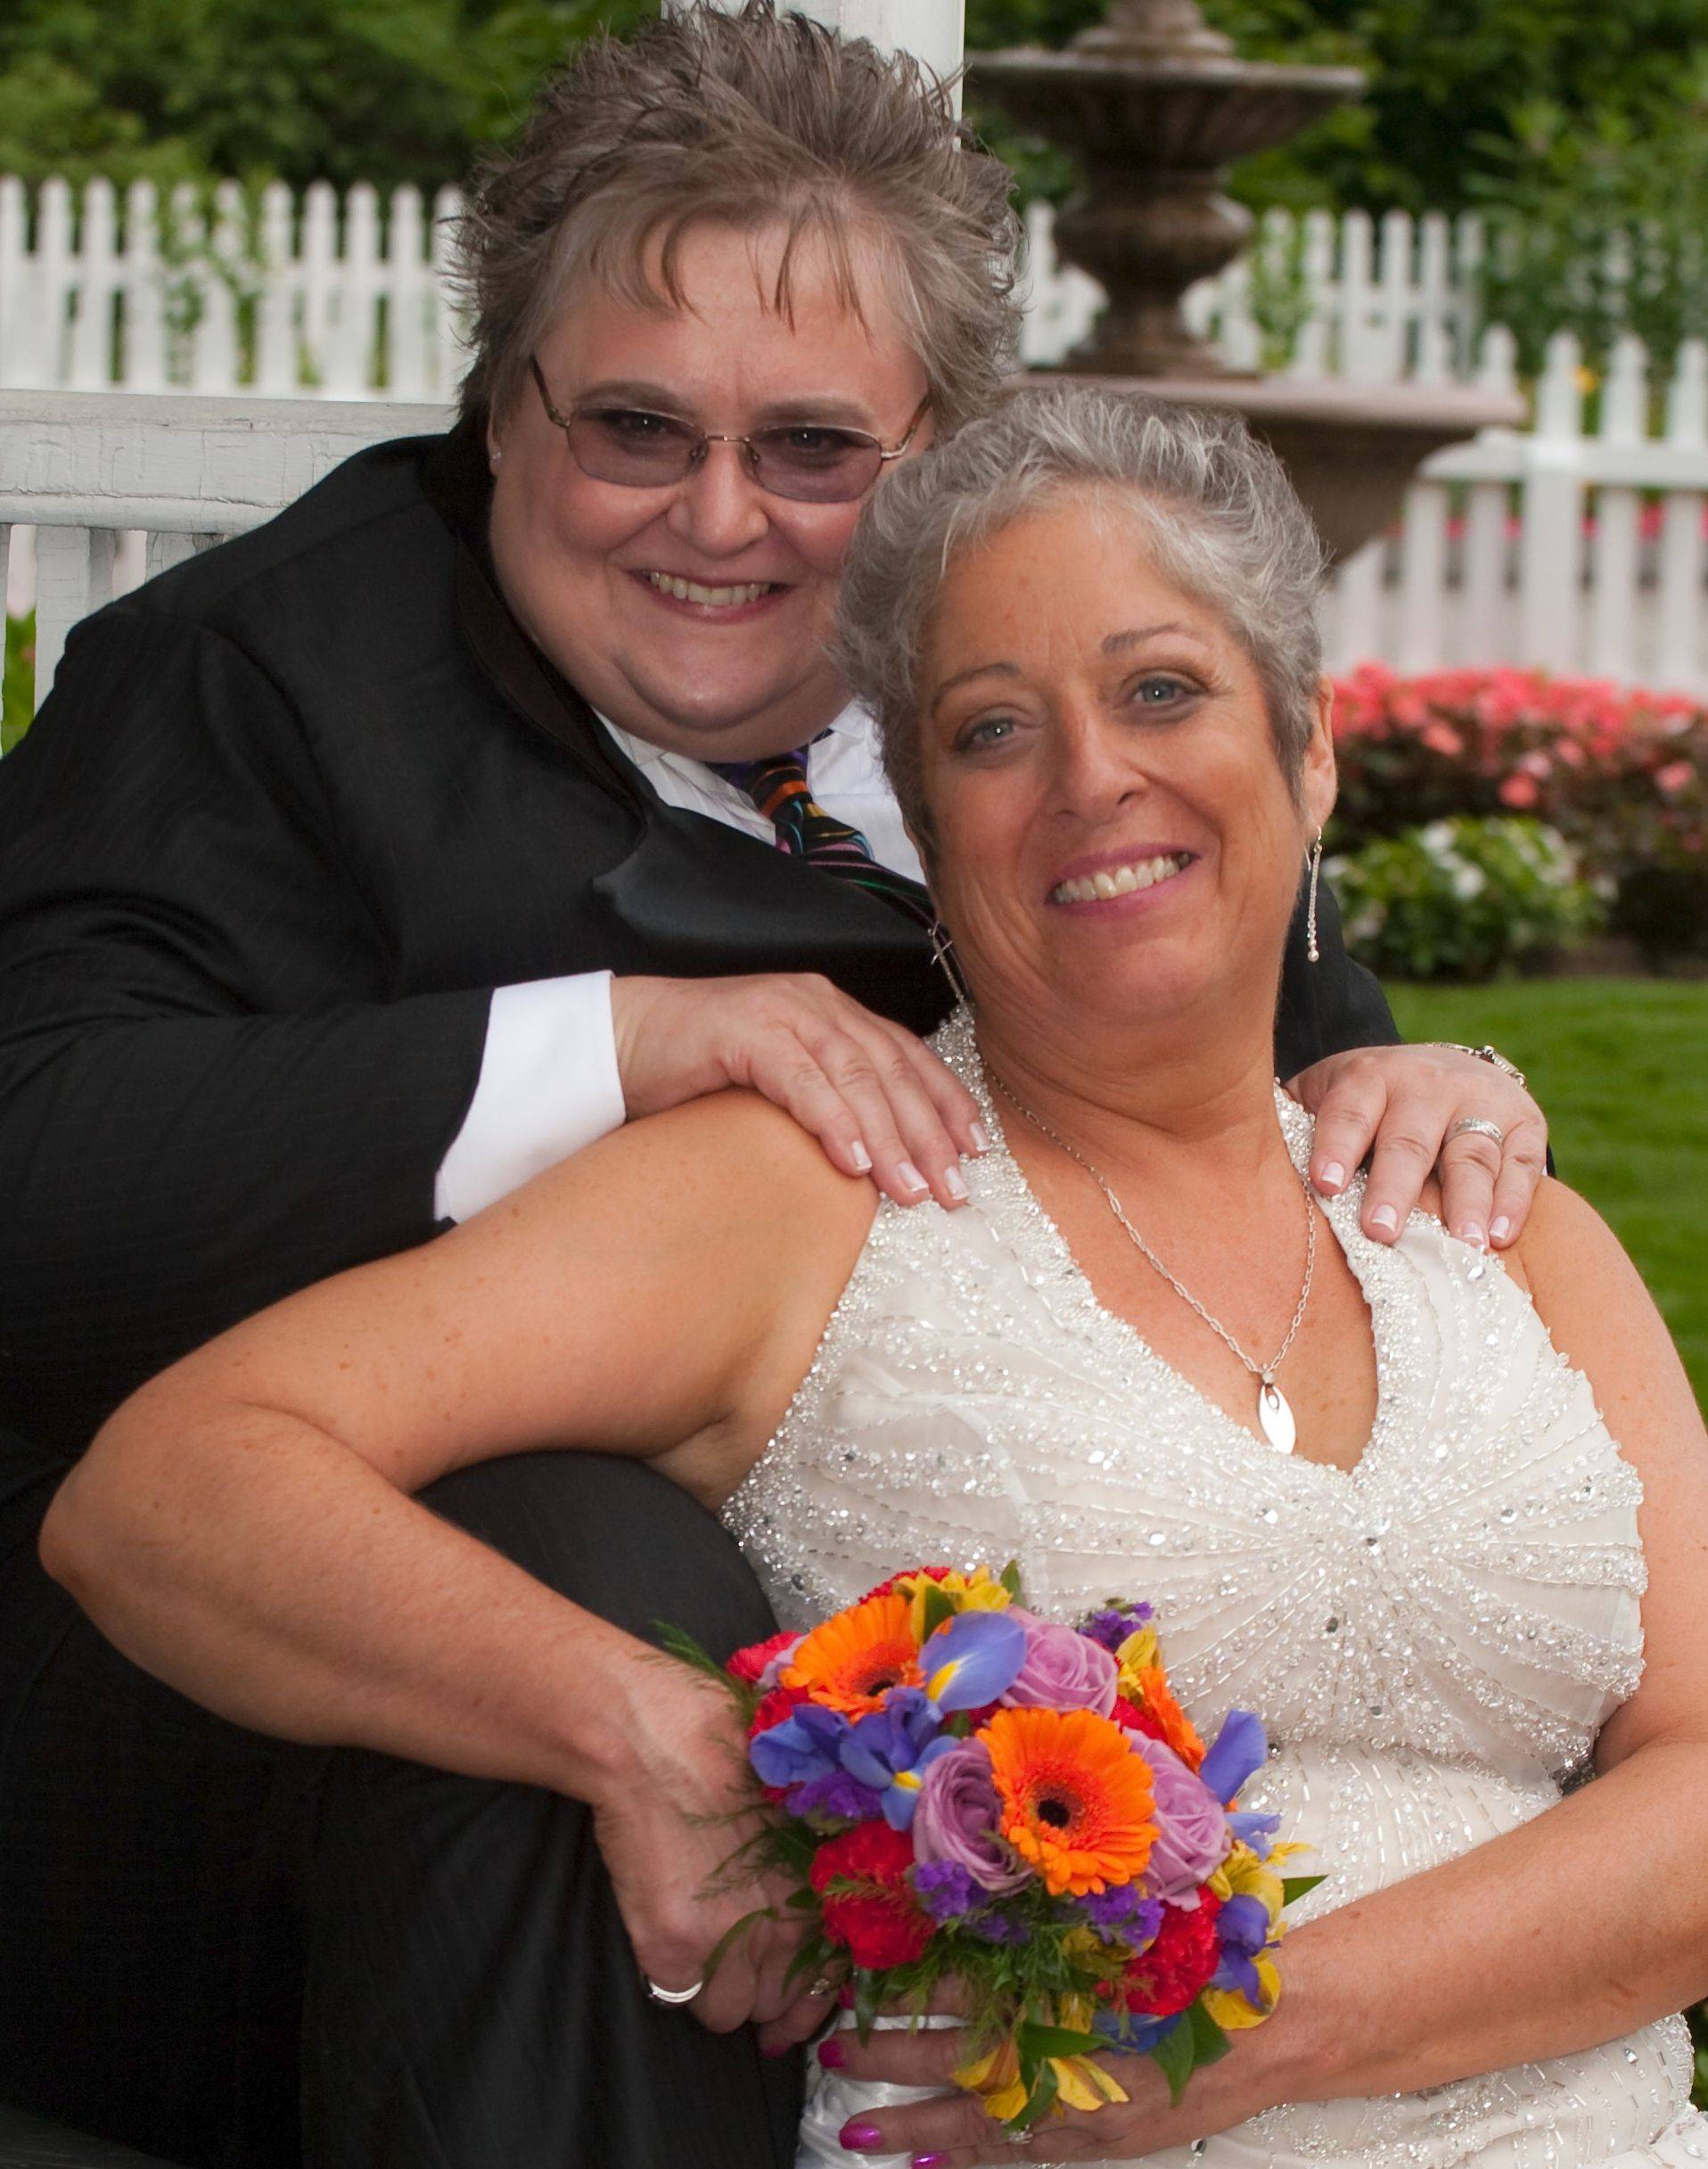 Dayle and Deeya Roberts of Lake Zurich were married in Attleboro, Mass., in 2009. They say Illinois� civil union law is a step in the right direction but insufficient.